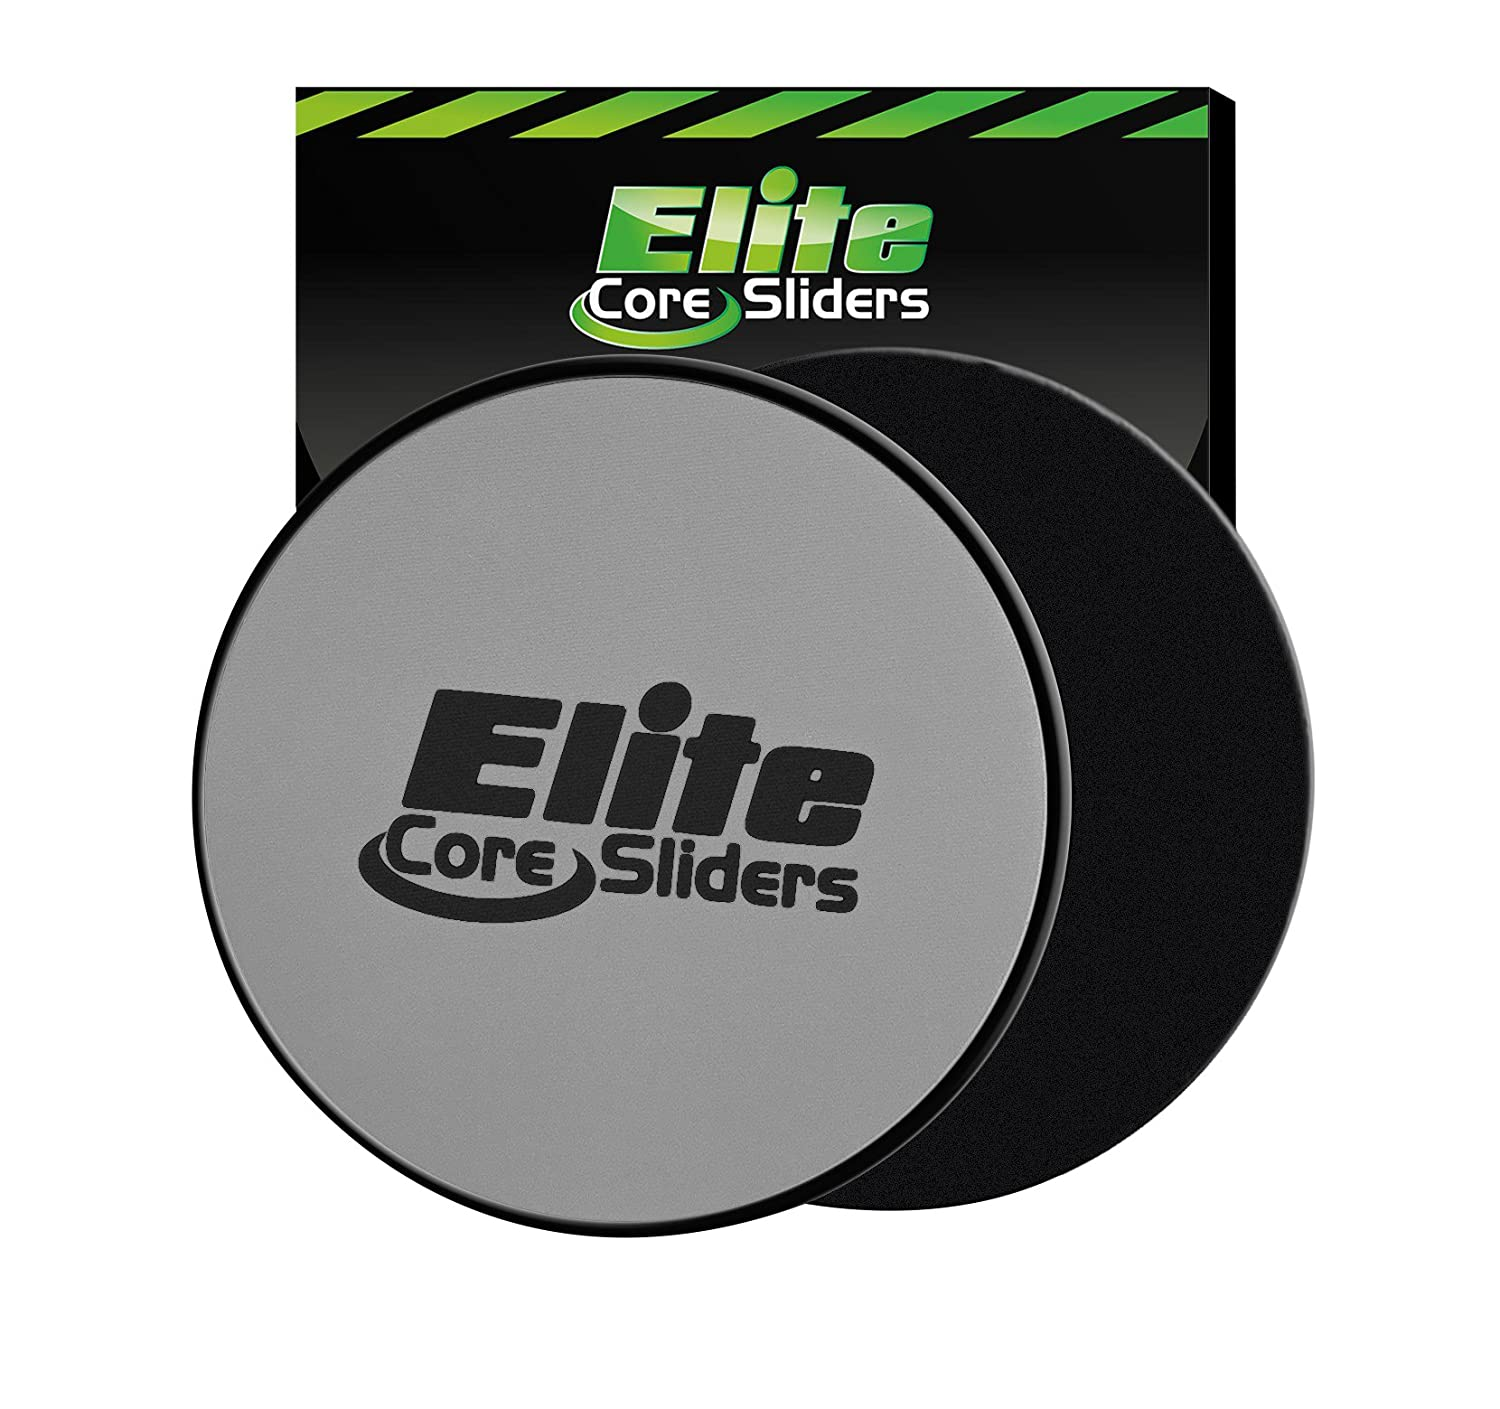 Elite Core Sliders Exercise - 2 Fun Fitness Sliders to Tone Your Body and Strengthen Your Core - Dual Sided to Work on Carpet or Hard Floors - Silver